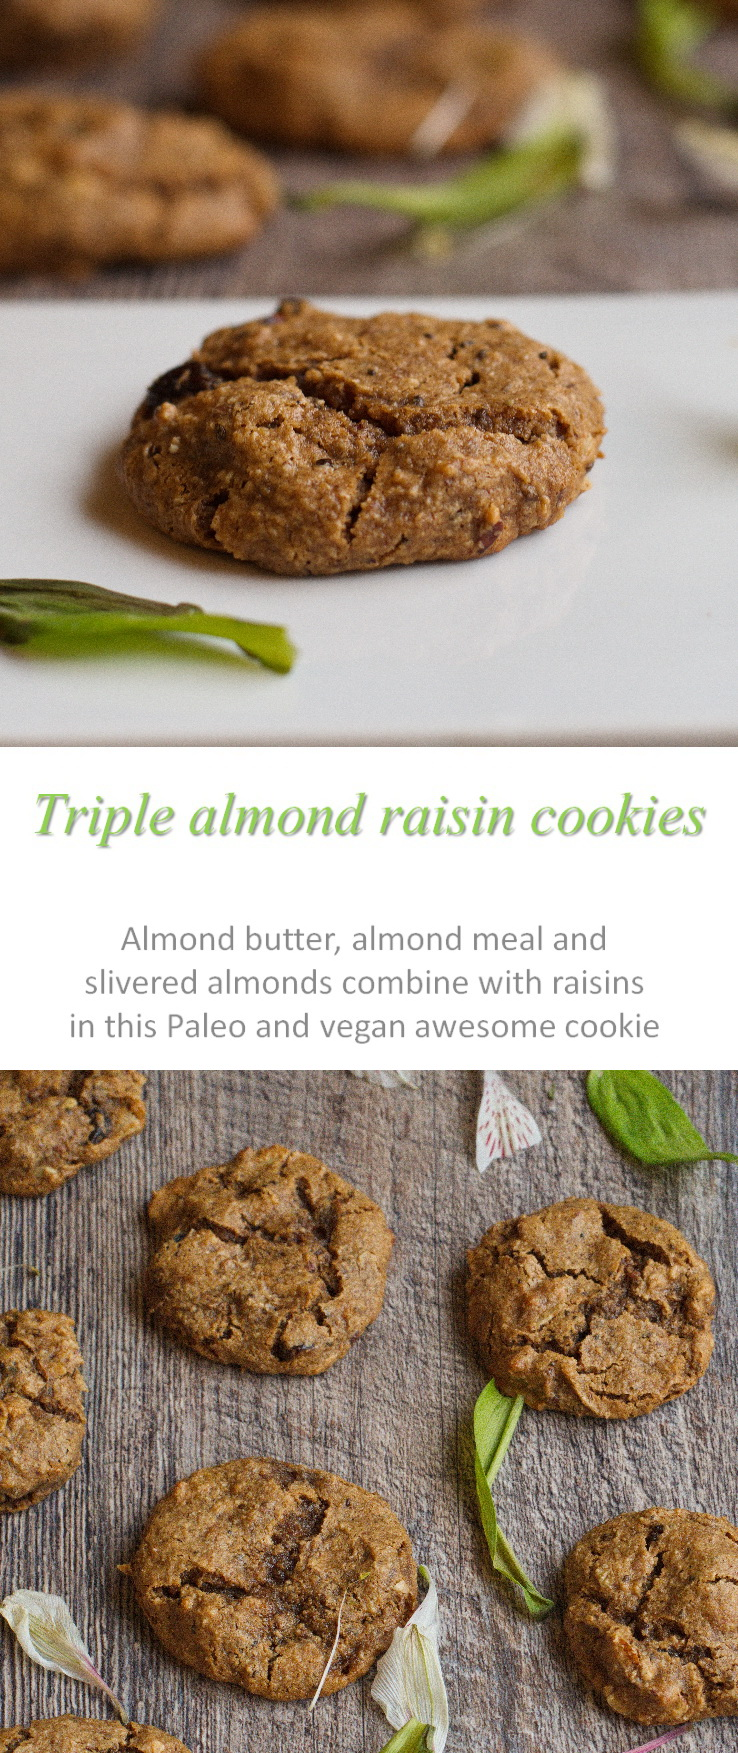 Almond butter, almond meal and slivered almonds combine with raisins to give these Paleo and vegan-friendly triple almond raisin cookies an amazing taste and texture #almond